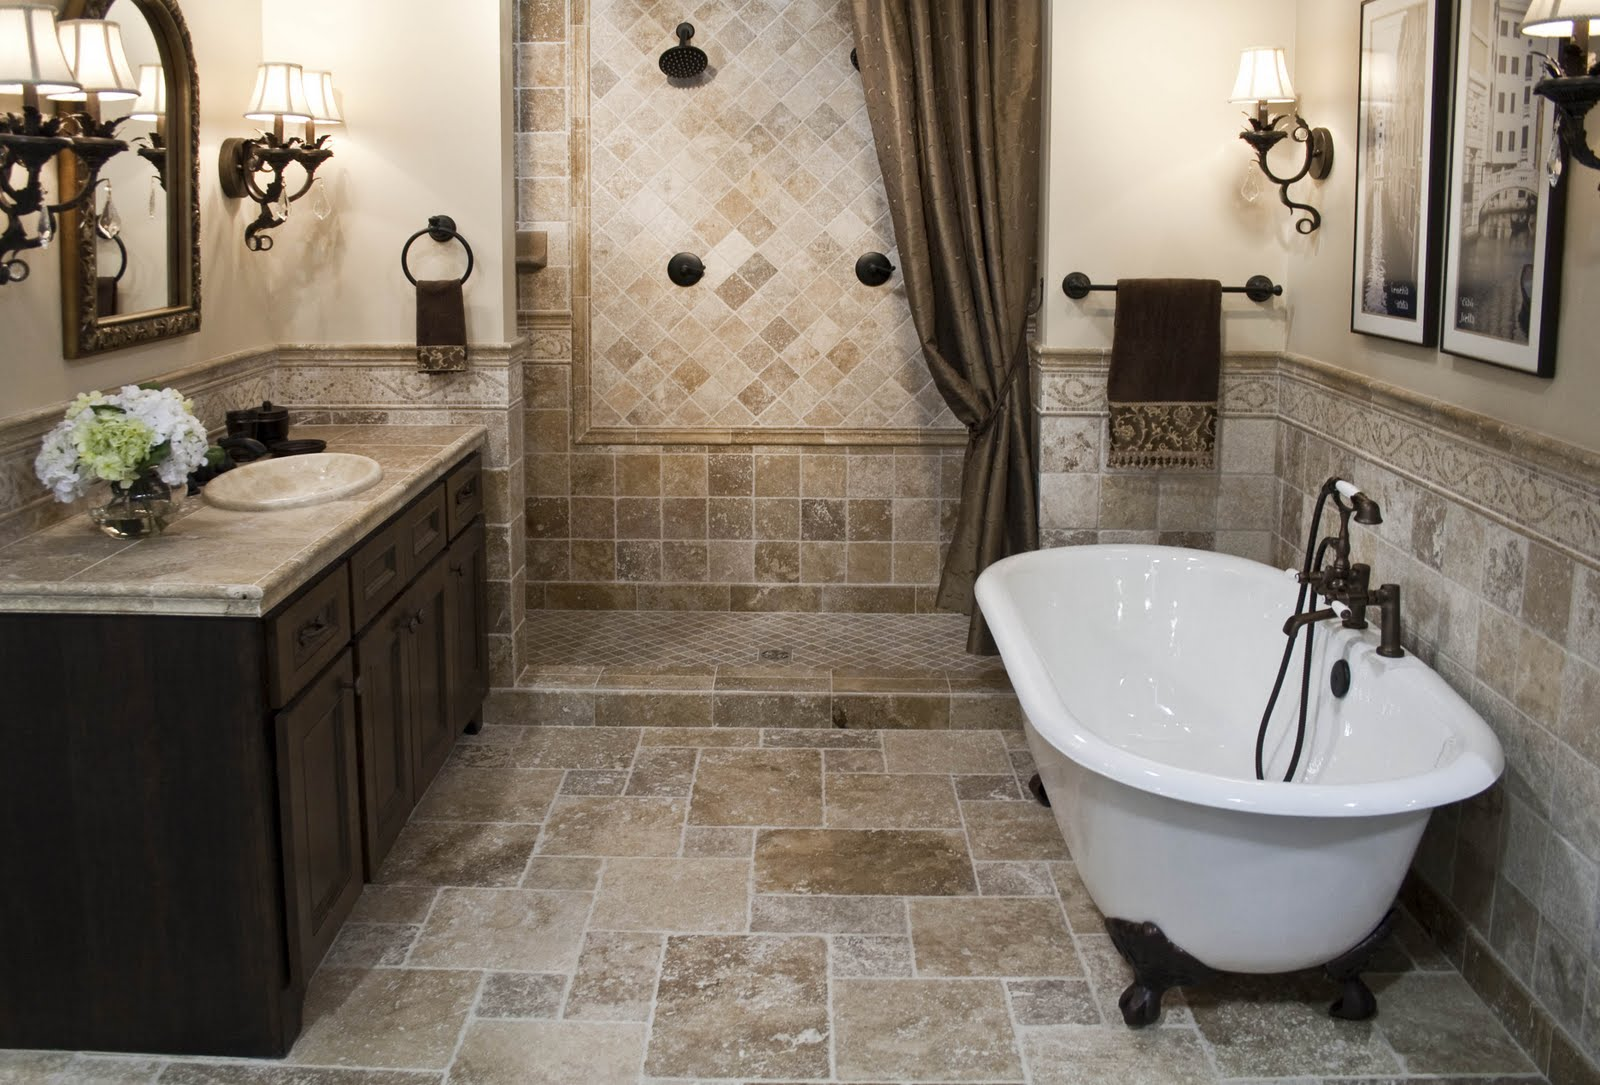 Transform Your Bathroom With the Help of Katy Construction & Remodeling